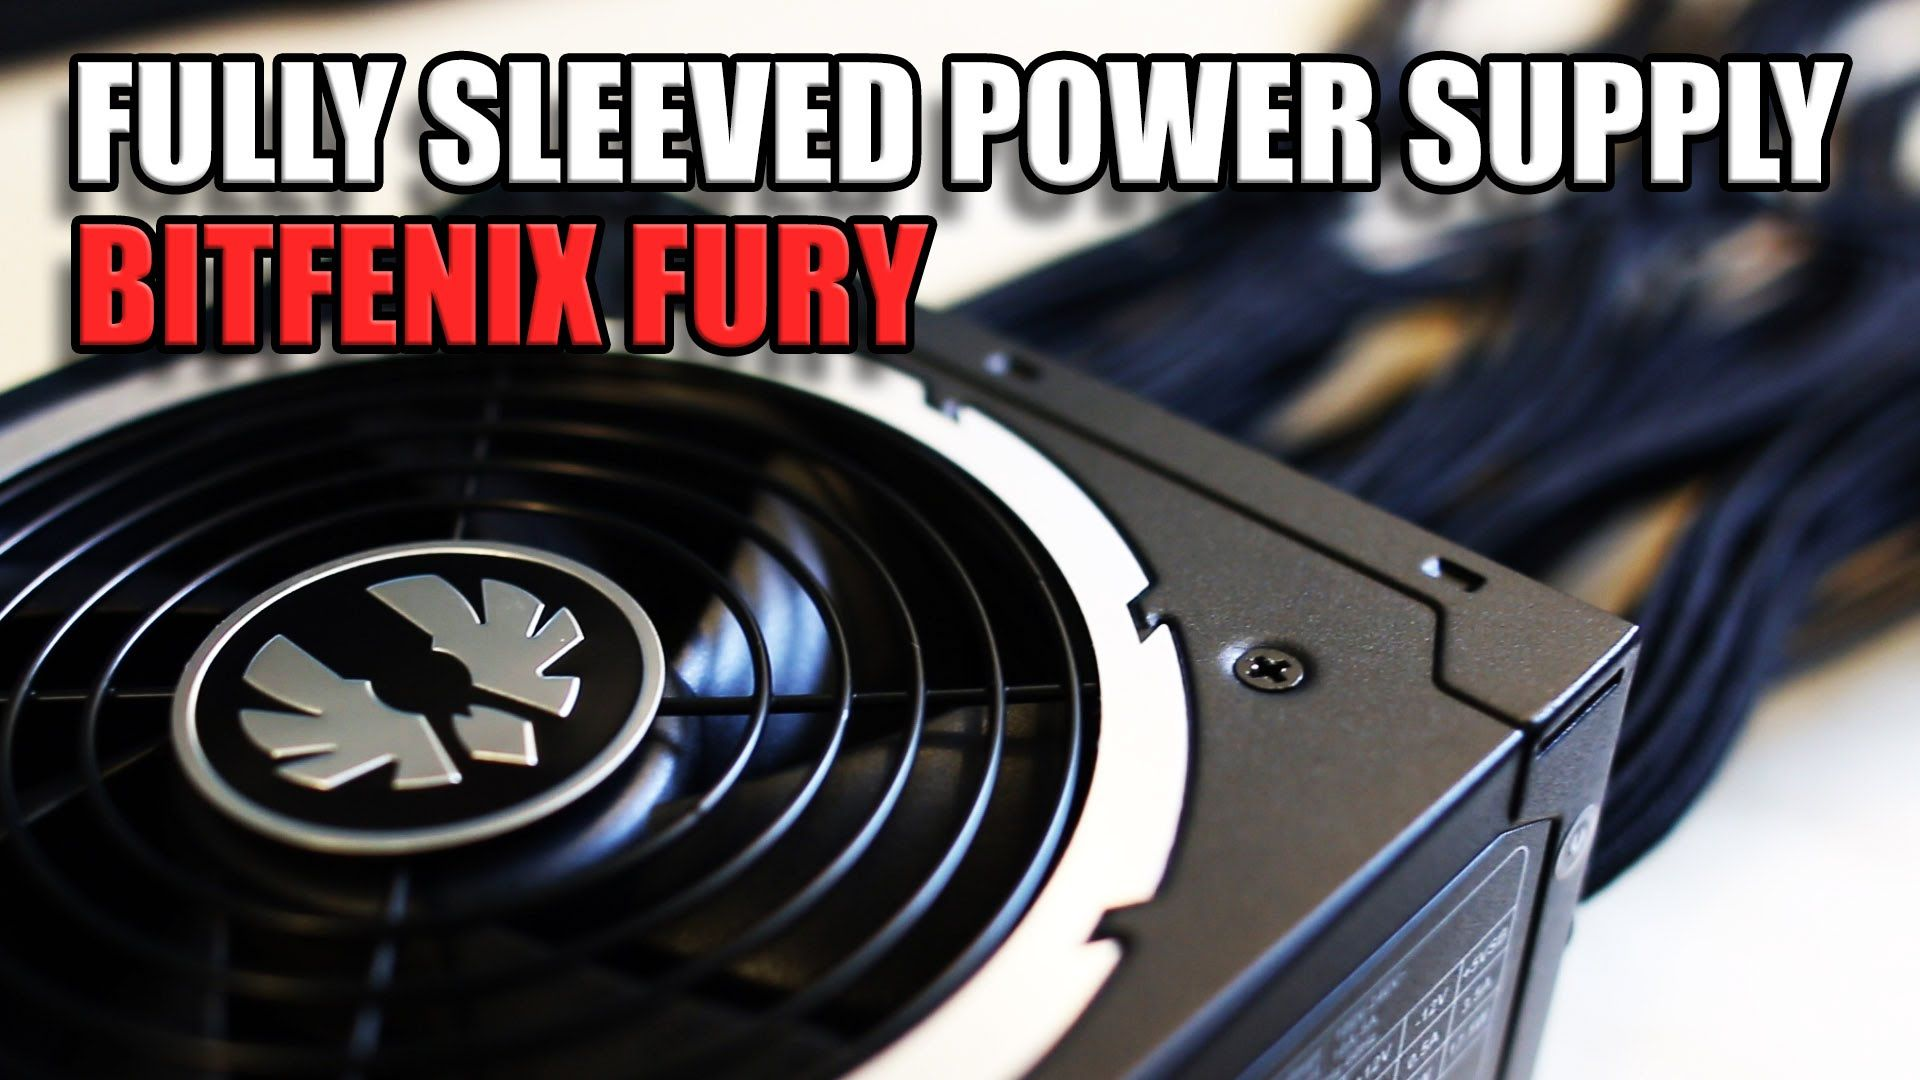 Bitfenix Fury Powersupplies - Individually Sleeved Cables??